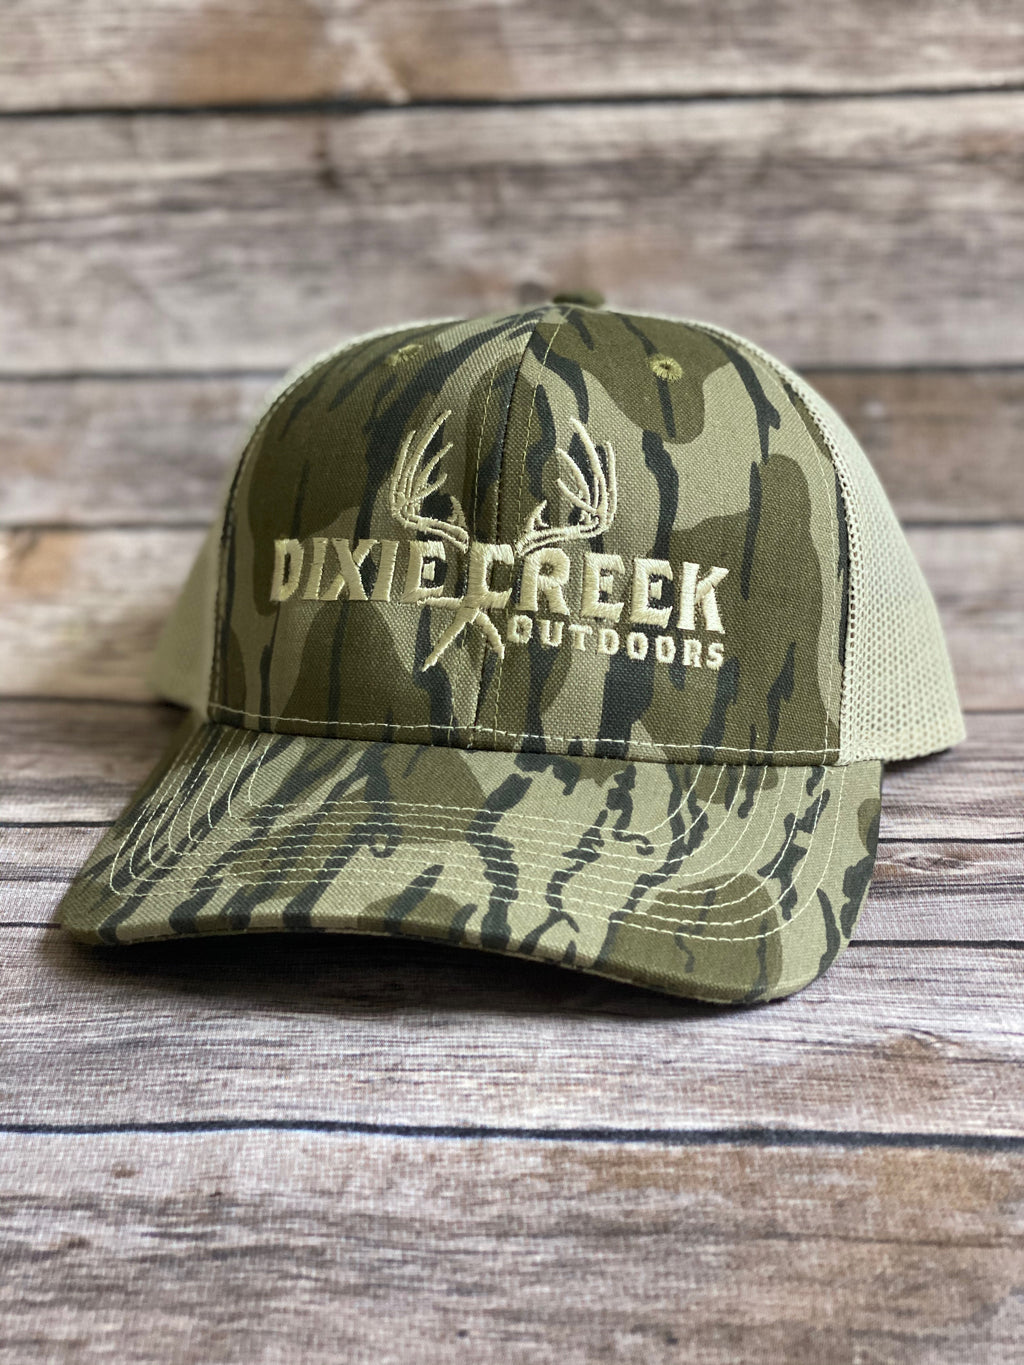 Dixie Creek Outdoors Mossy Oak Bottomland Hat